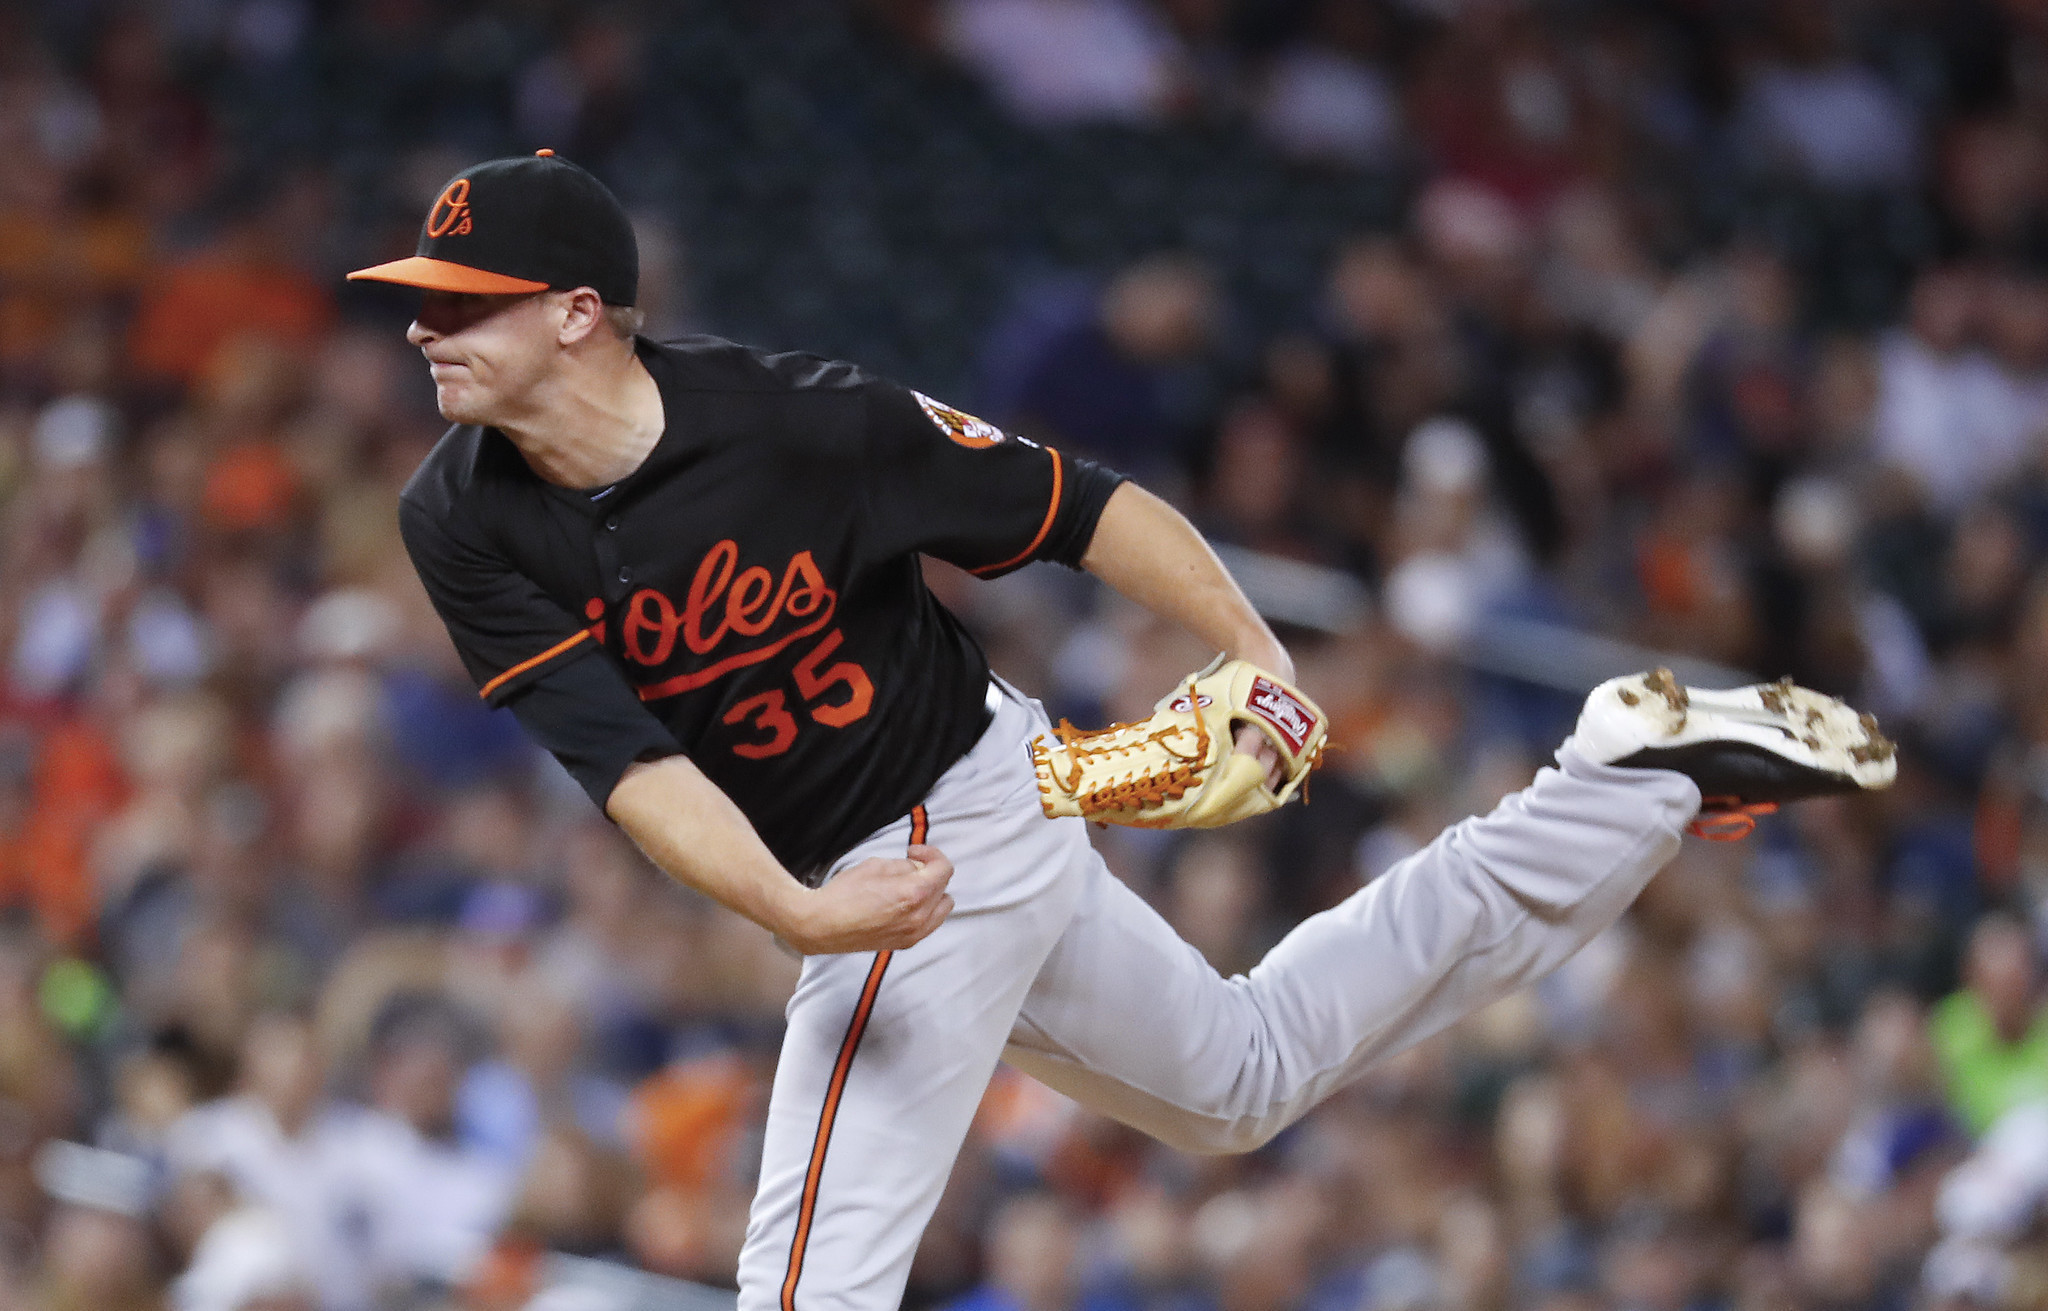 Bal-orioles-notes-bloated-bullpen-yielding-both-results-and-confusion-trey-mancini-debuts-tuesday-20160920